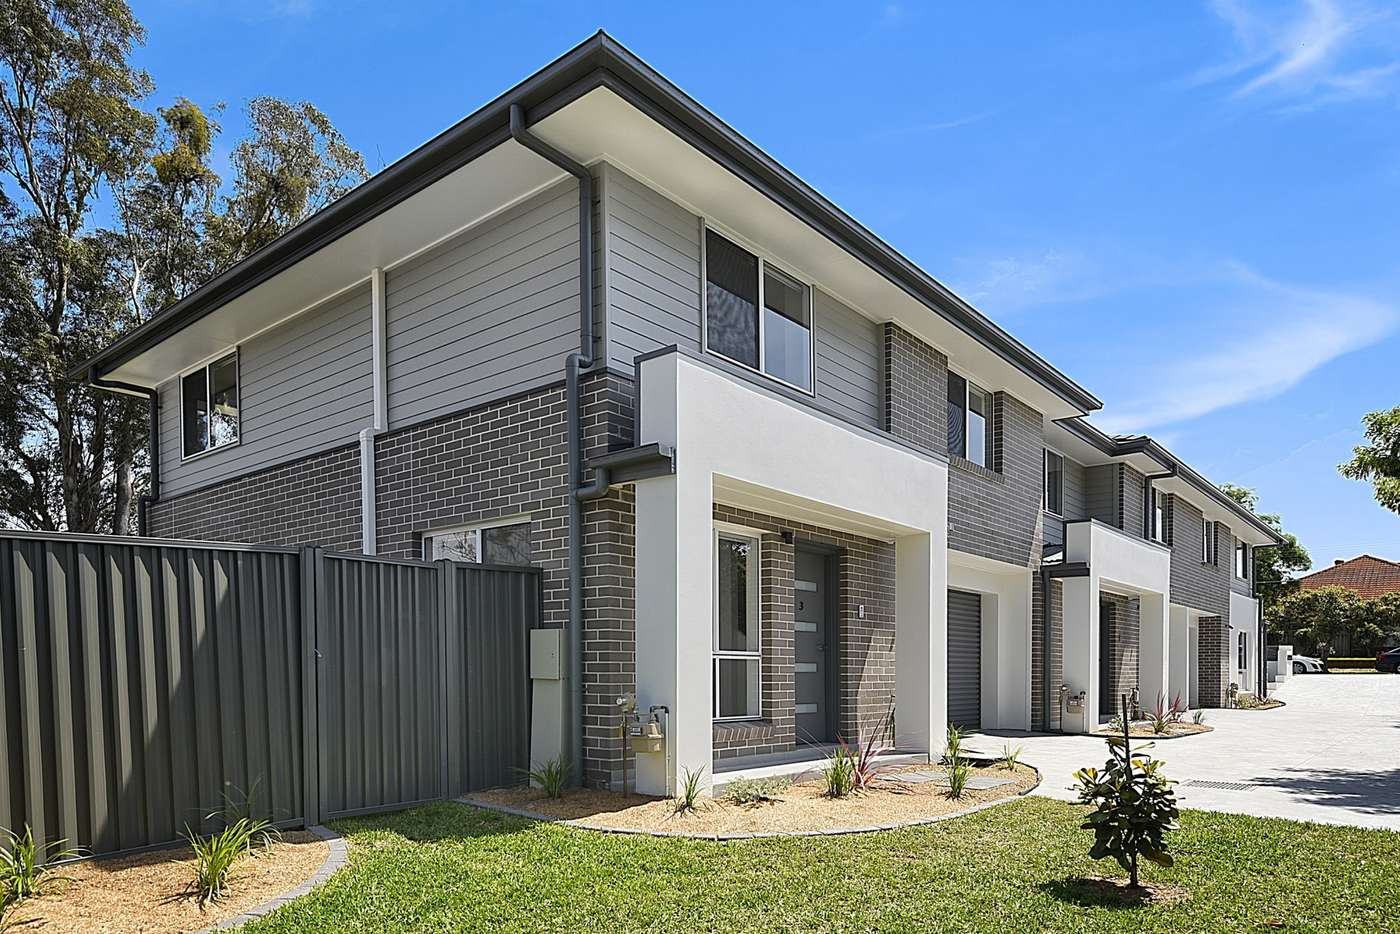 Main view of Homely townhouse listing, 3/26 Cronin Street, Penrith NSW 2750